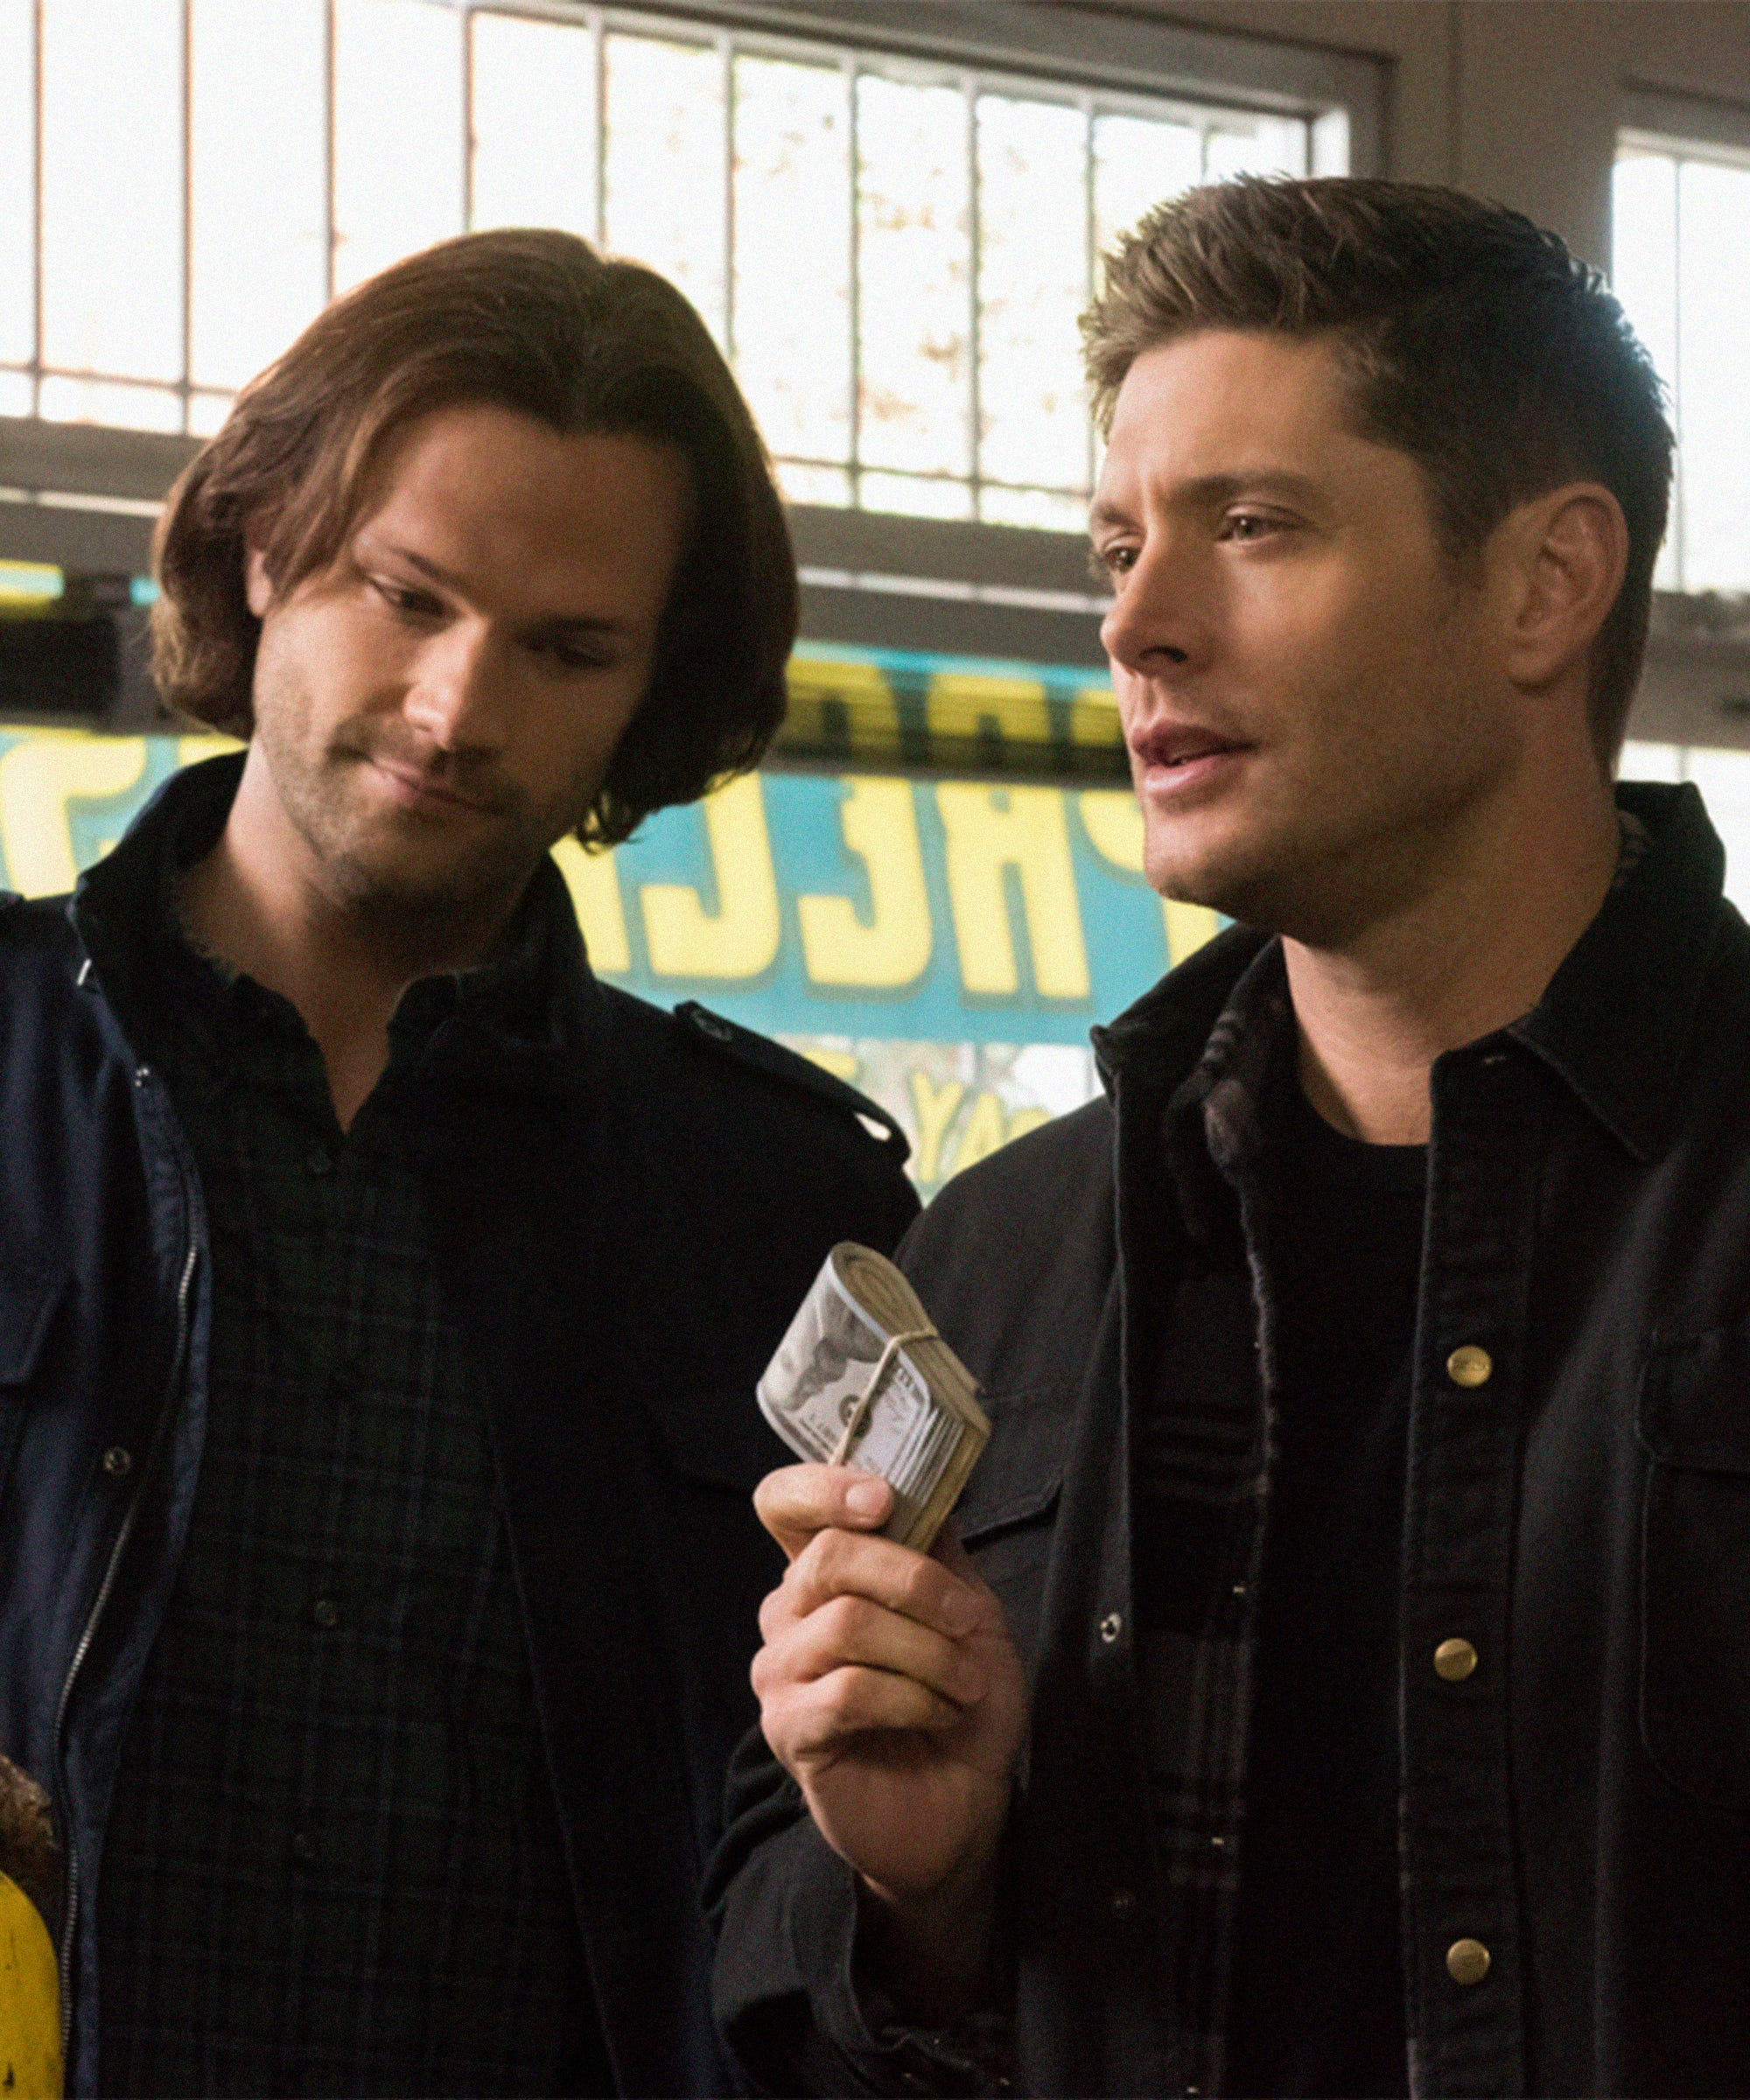 Supernatural, The Unkillable Series, Will Finally End